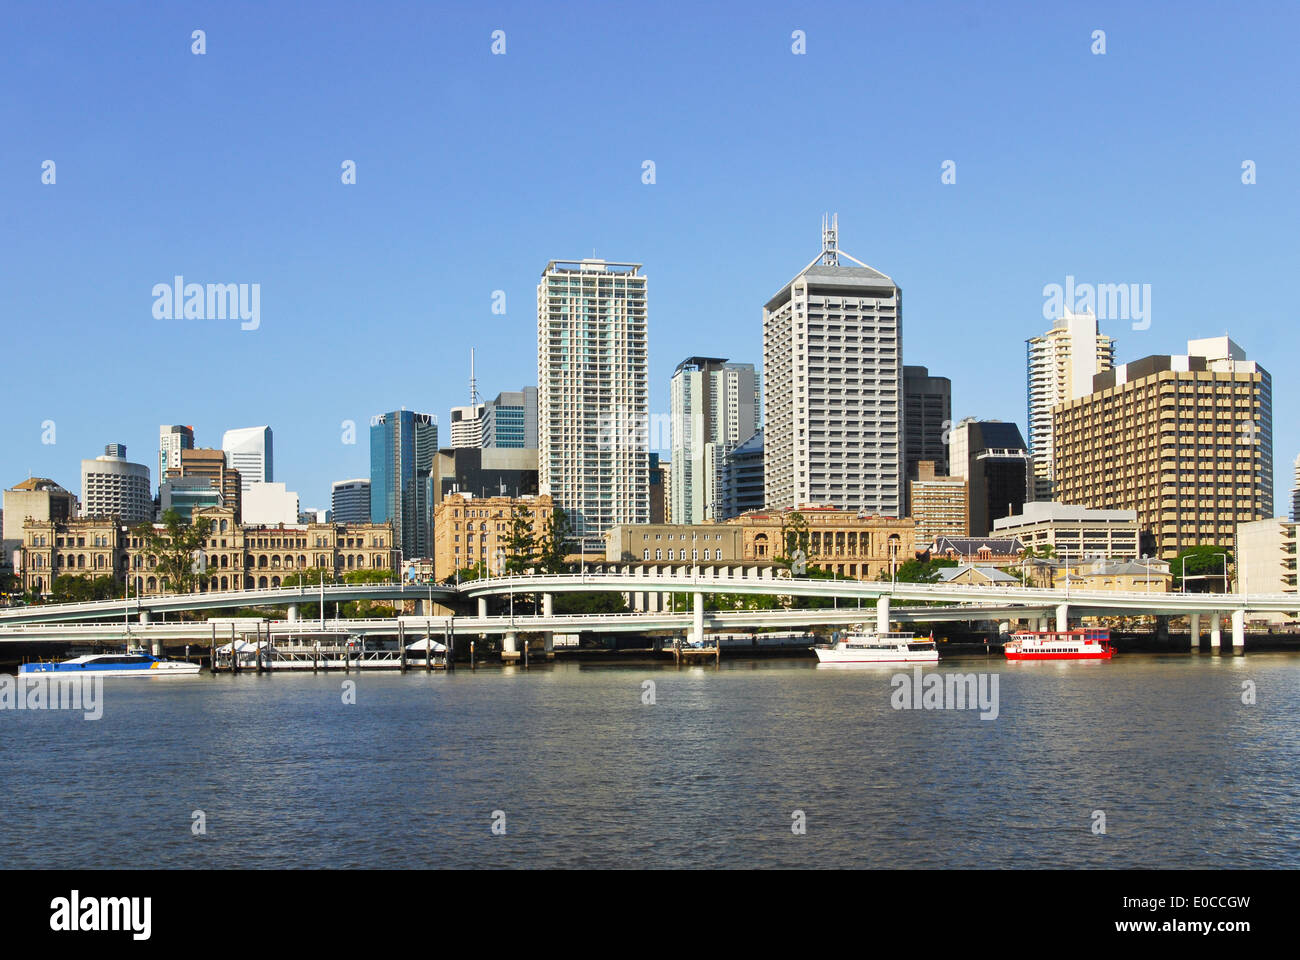 Brisbane central business district, Australia - Stock Image